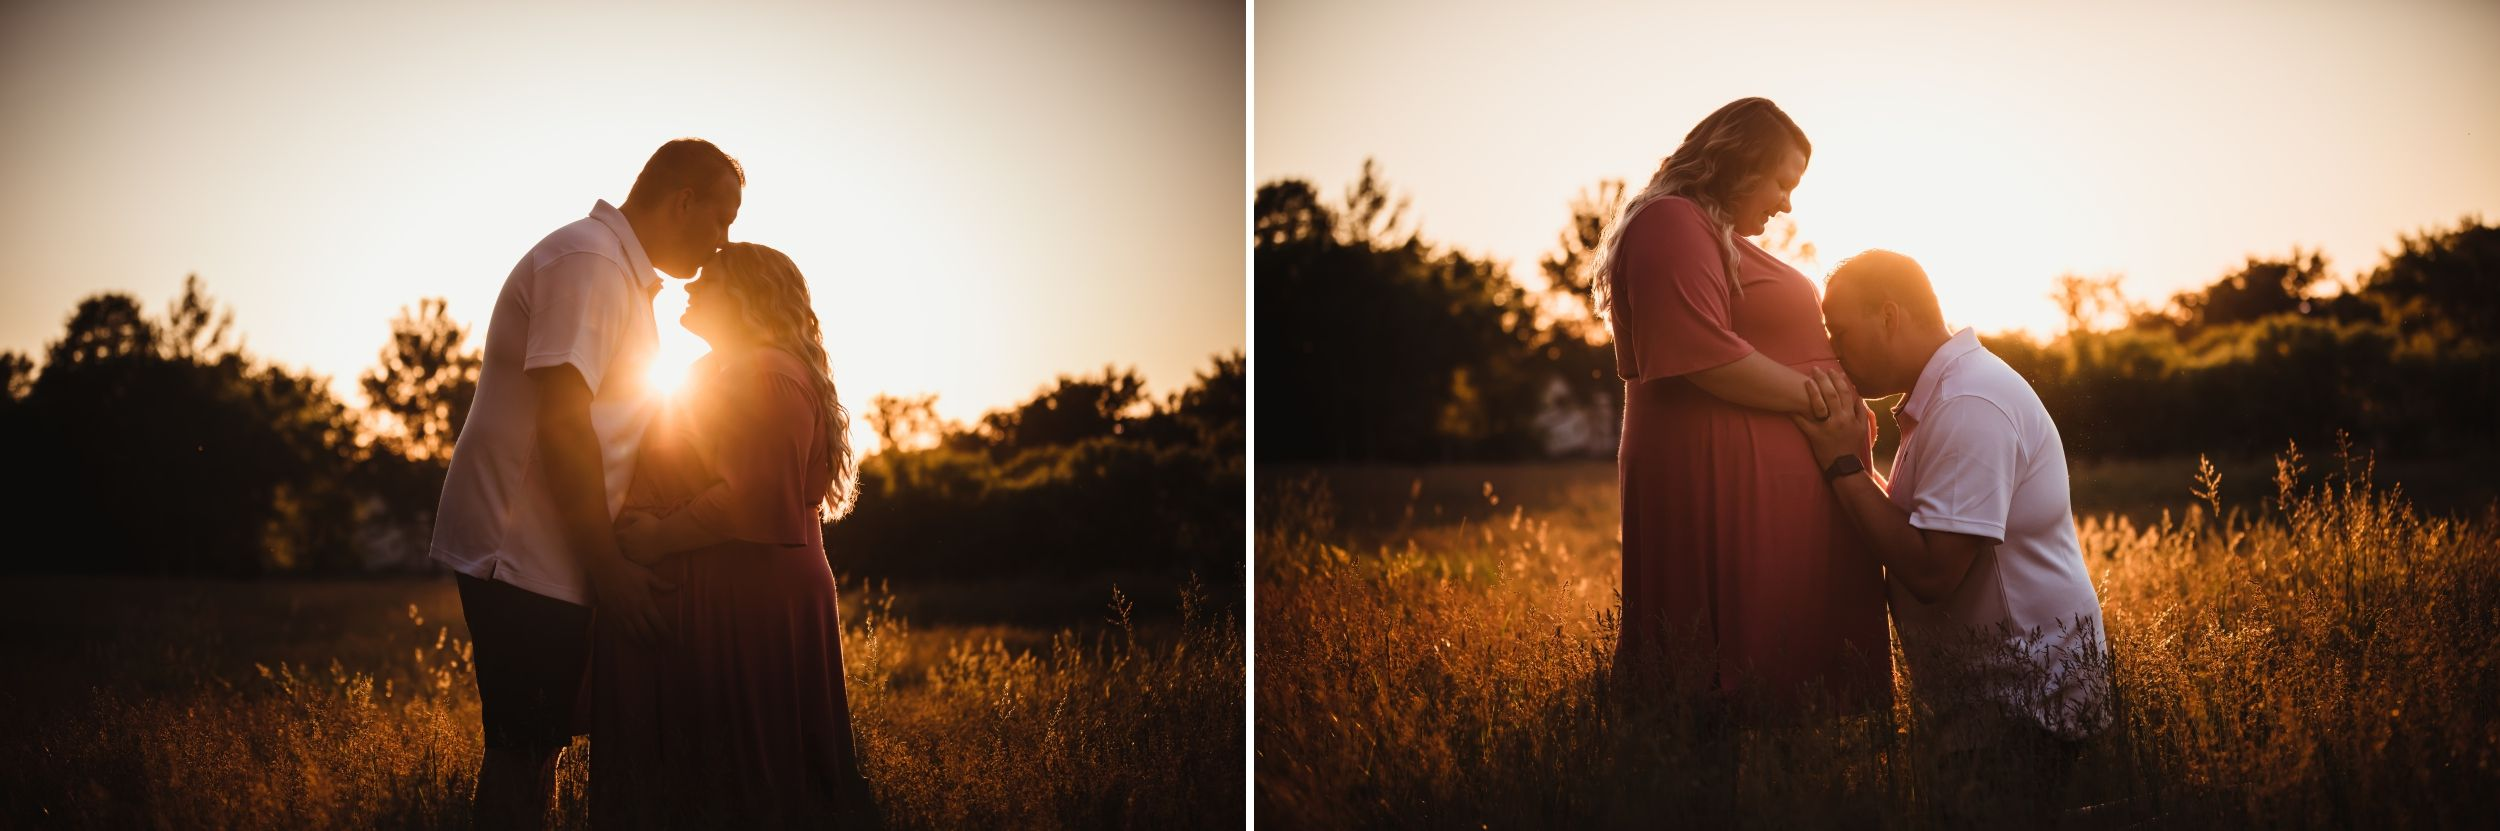 Dad kissing pregnant mom's forehead and then belly in a field at sunset.